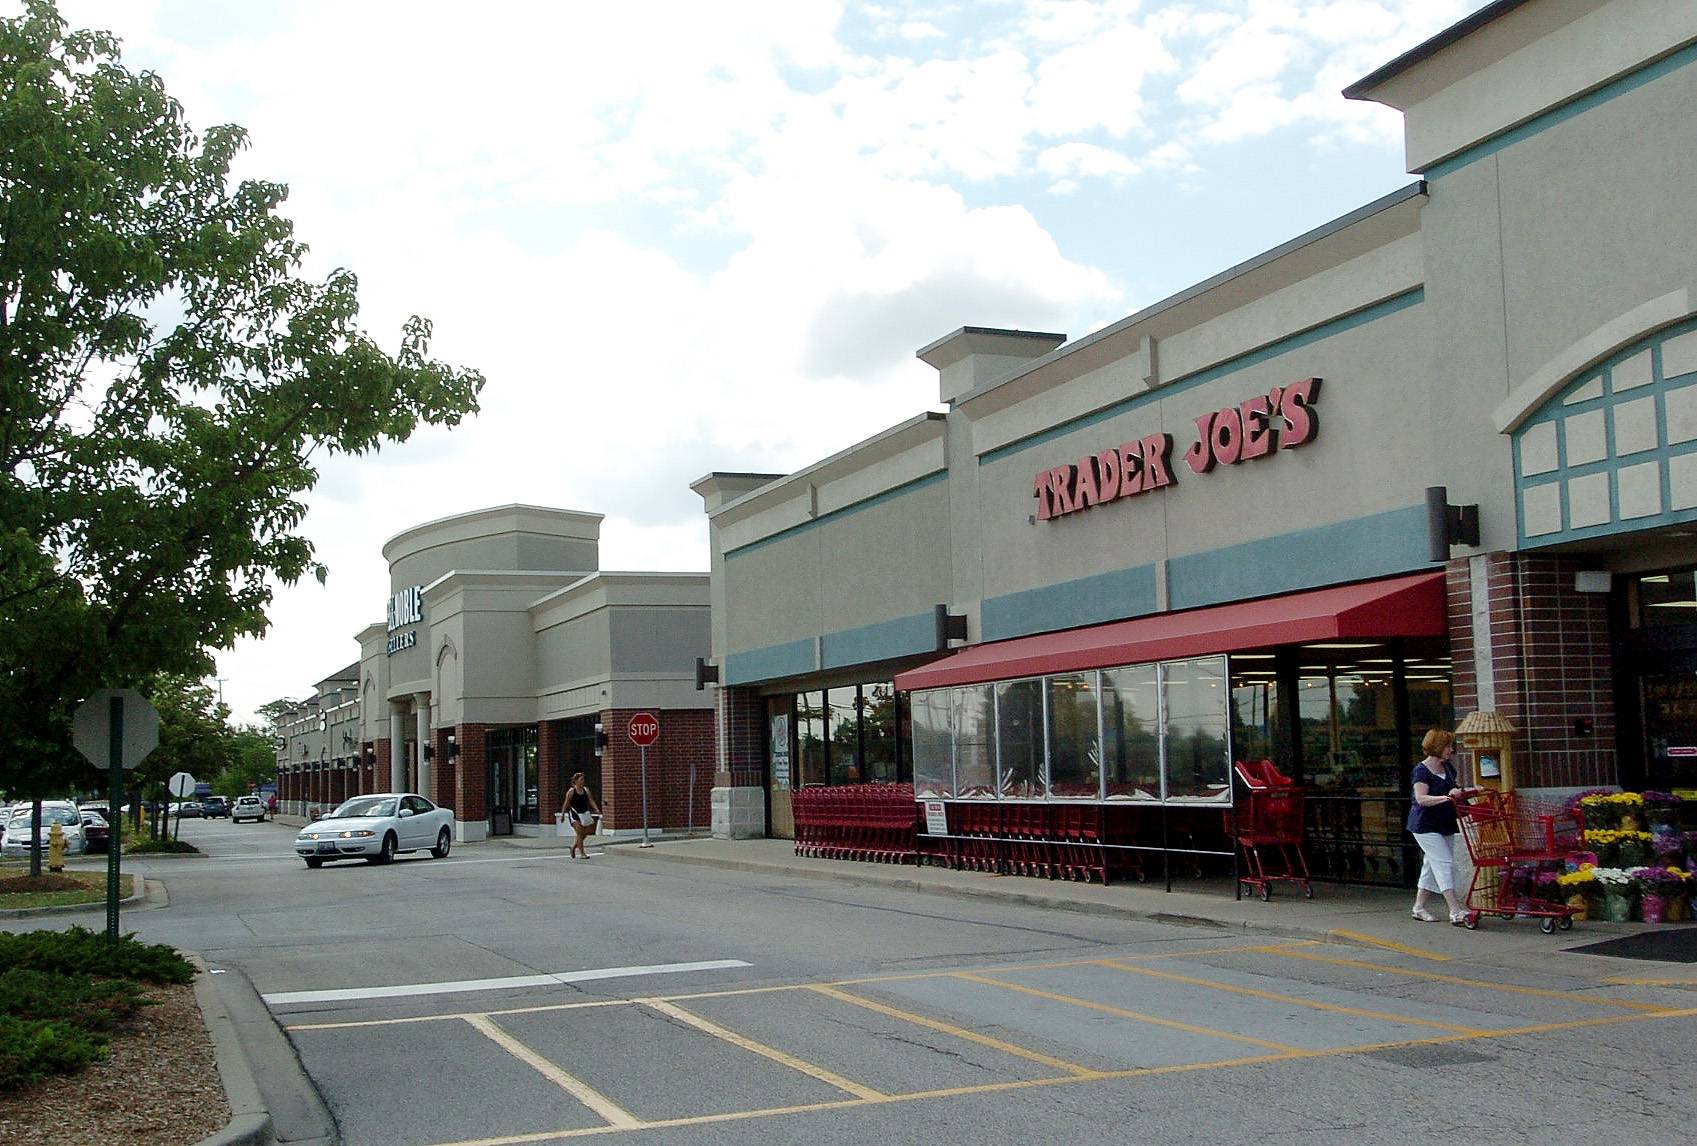 Bob Chwedyk/bchwedyk@dailyherald.com, 2011Arlington Heights has a Trader Joe's at Rand and Arlington Hts. roads, but the village is paying for a study to create a unified look for the whole shopping area around there.